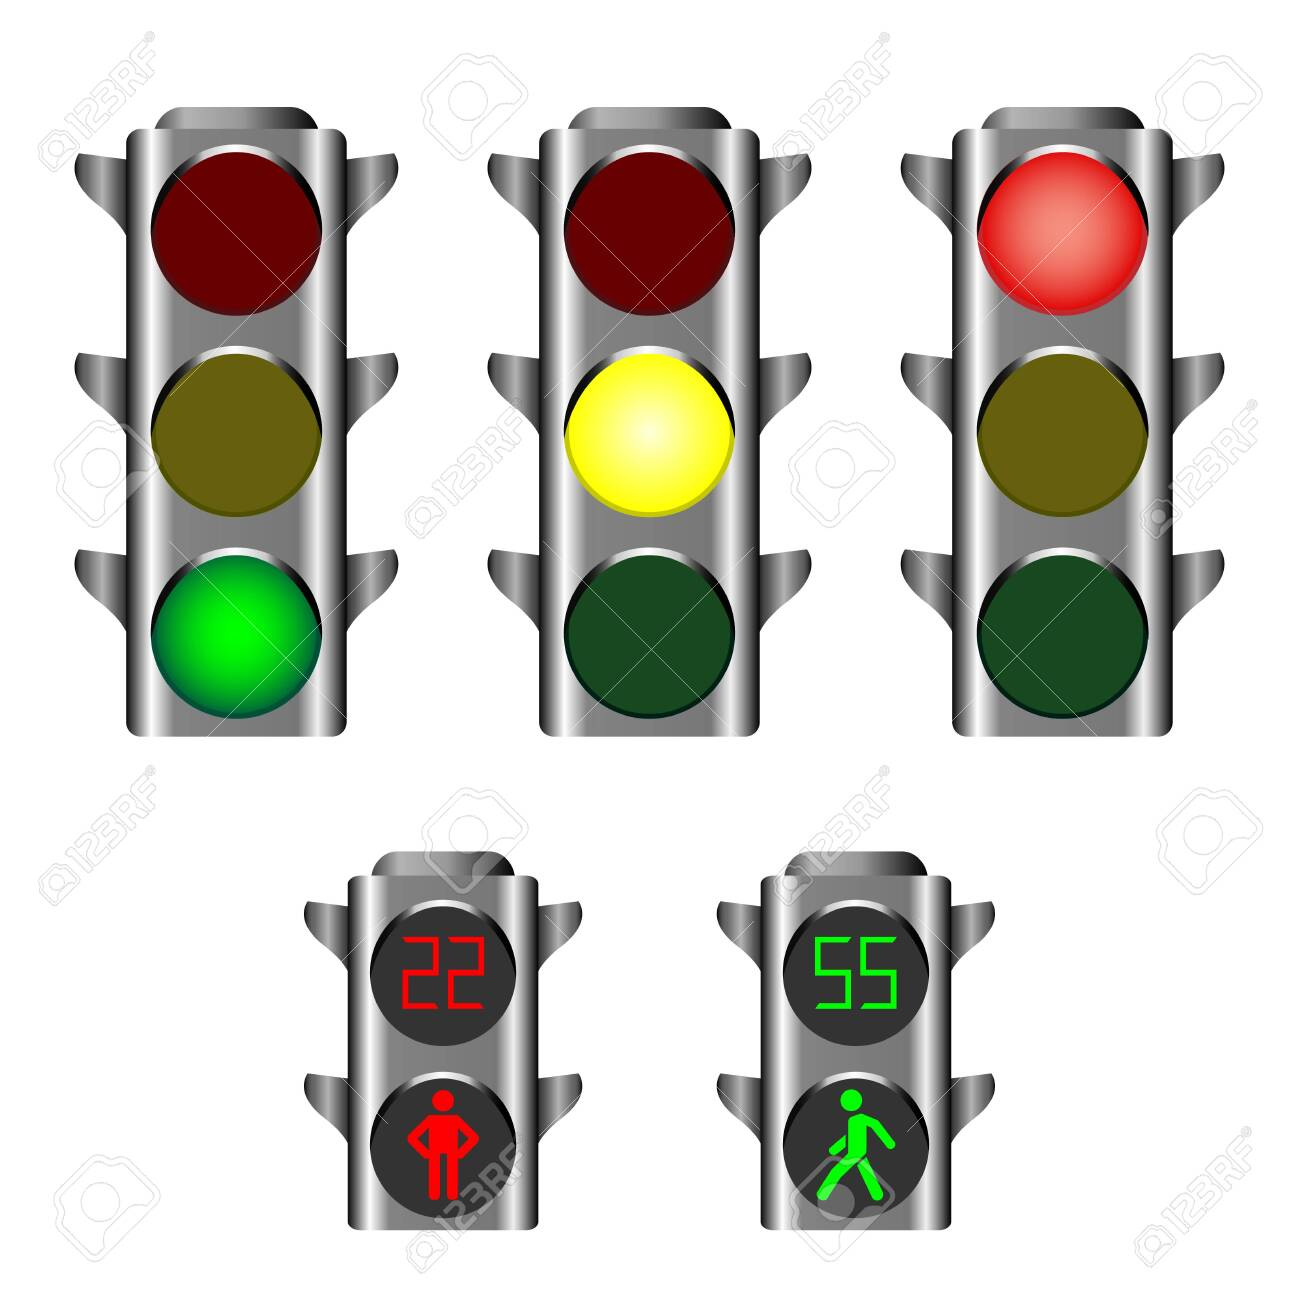 Traffic lights showing red, amber or green lights for drivers and pedestrian lights red and green - 124026340